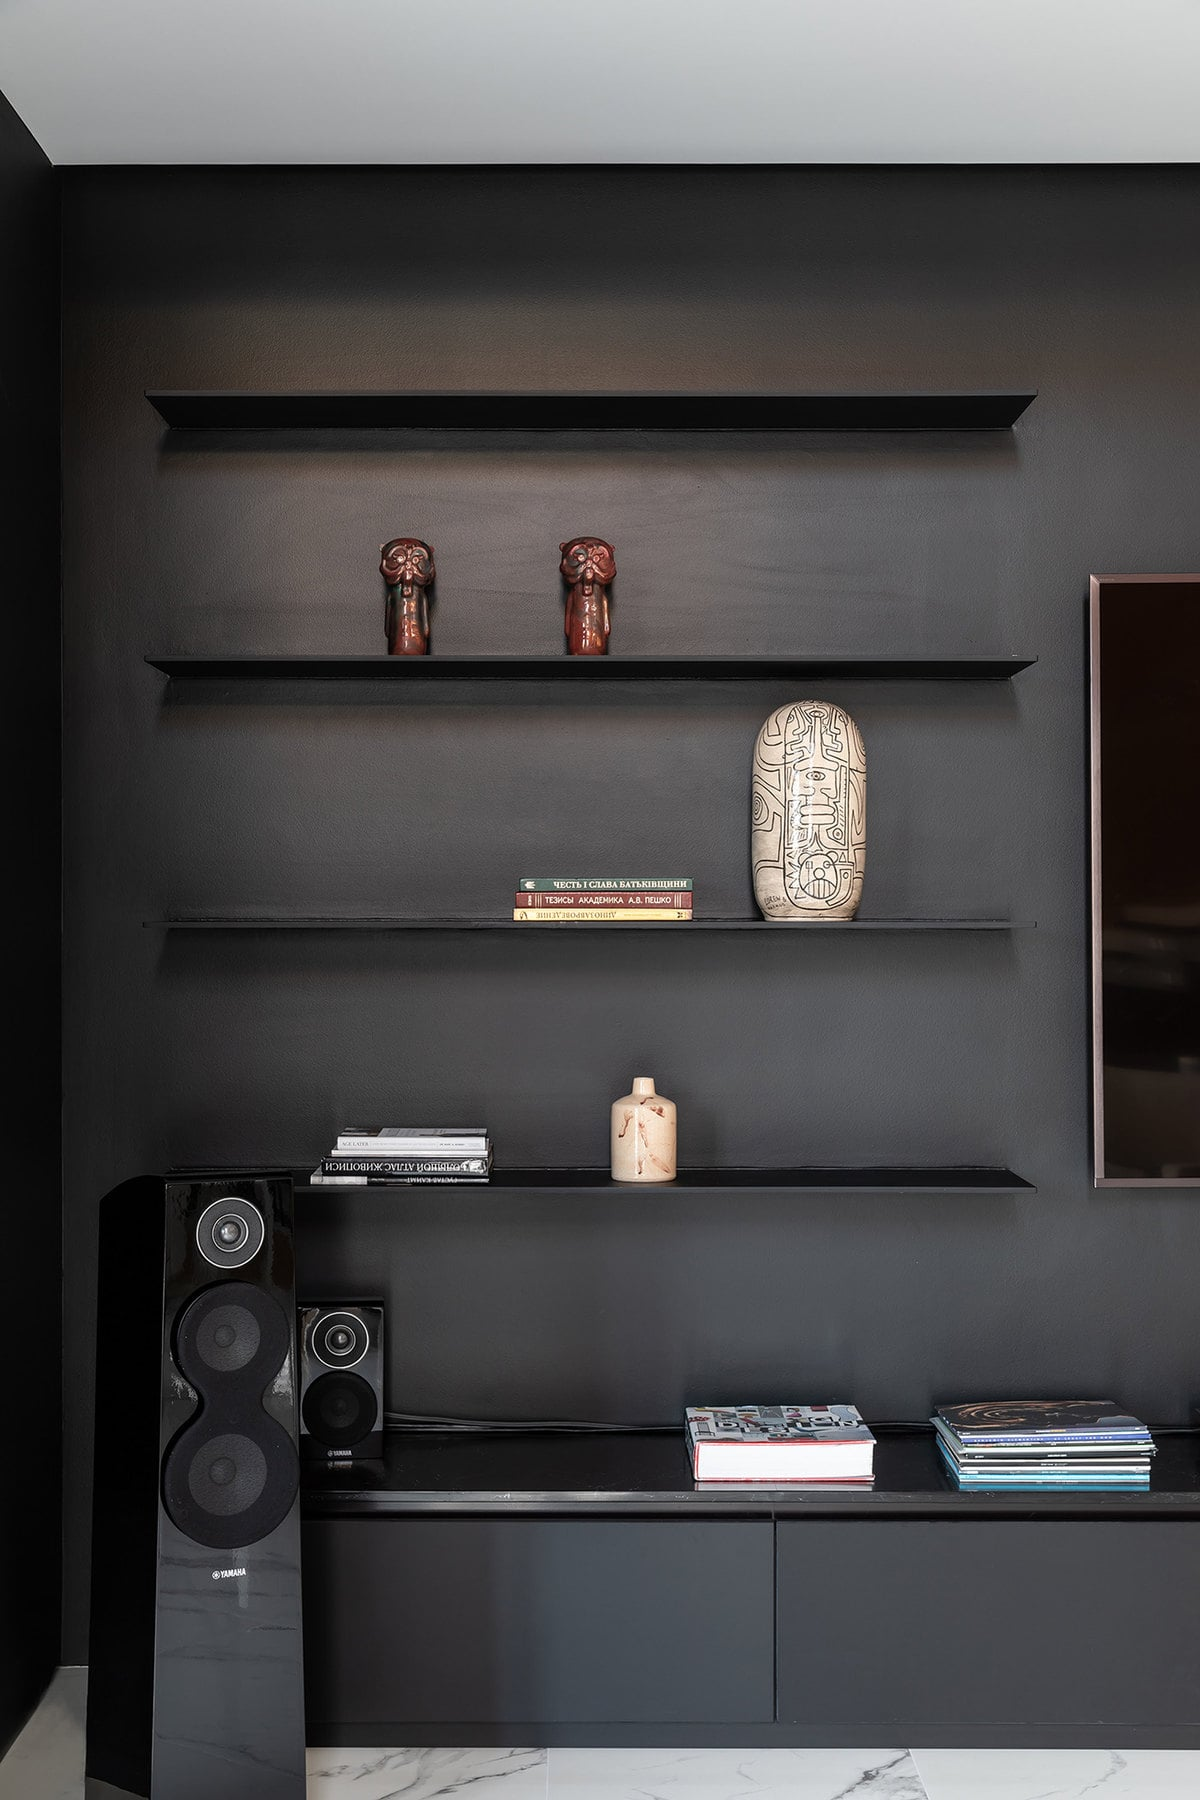 This is a closer look at the black wall and its built-in floating shelves that are perfect for decors beside the wall-mounted TV.